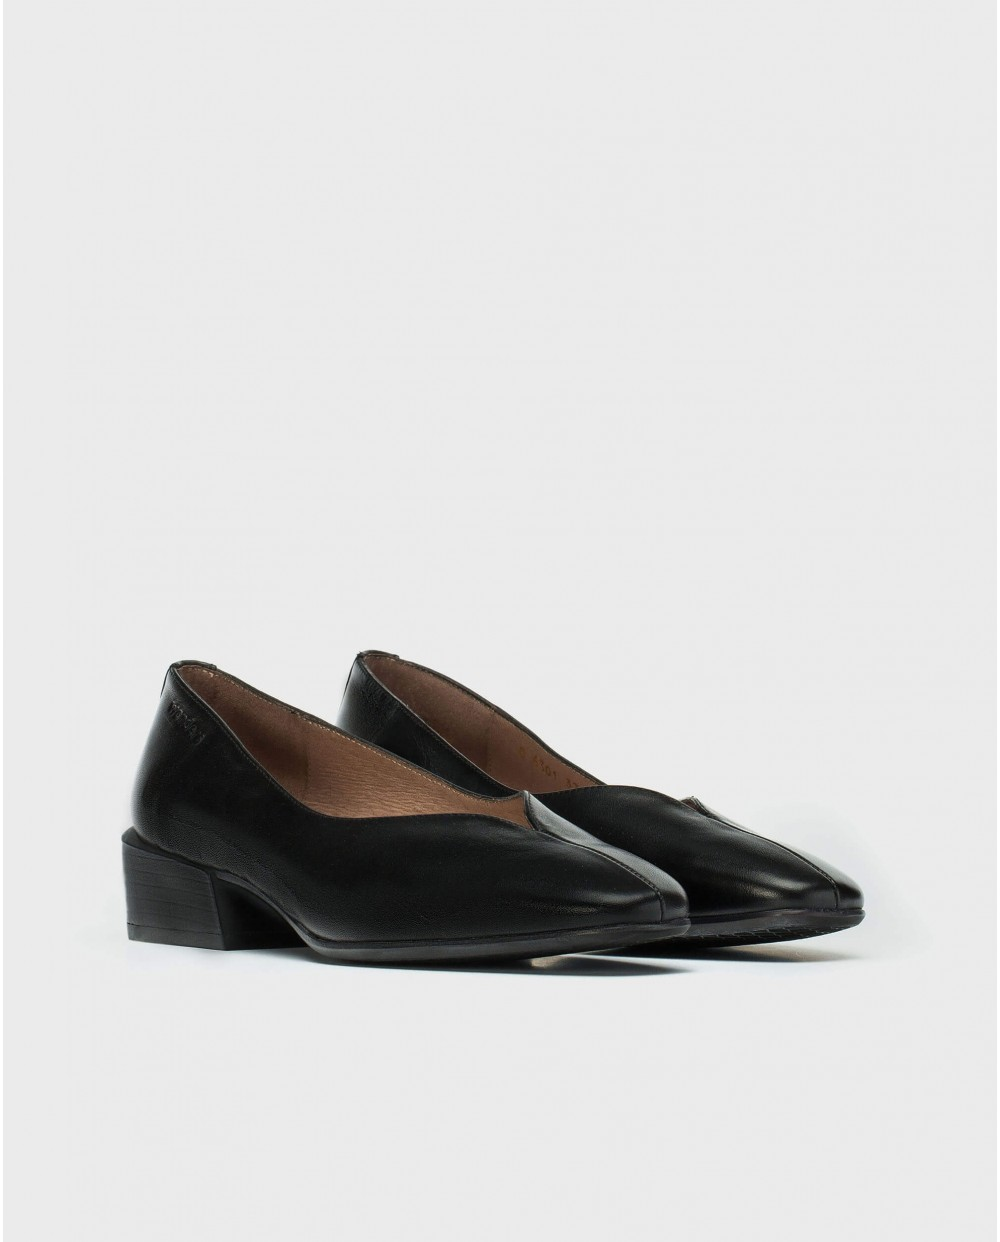 Wonders-Flat Shoes-Moccasins with cut out detail